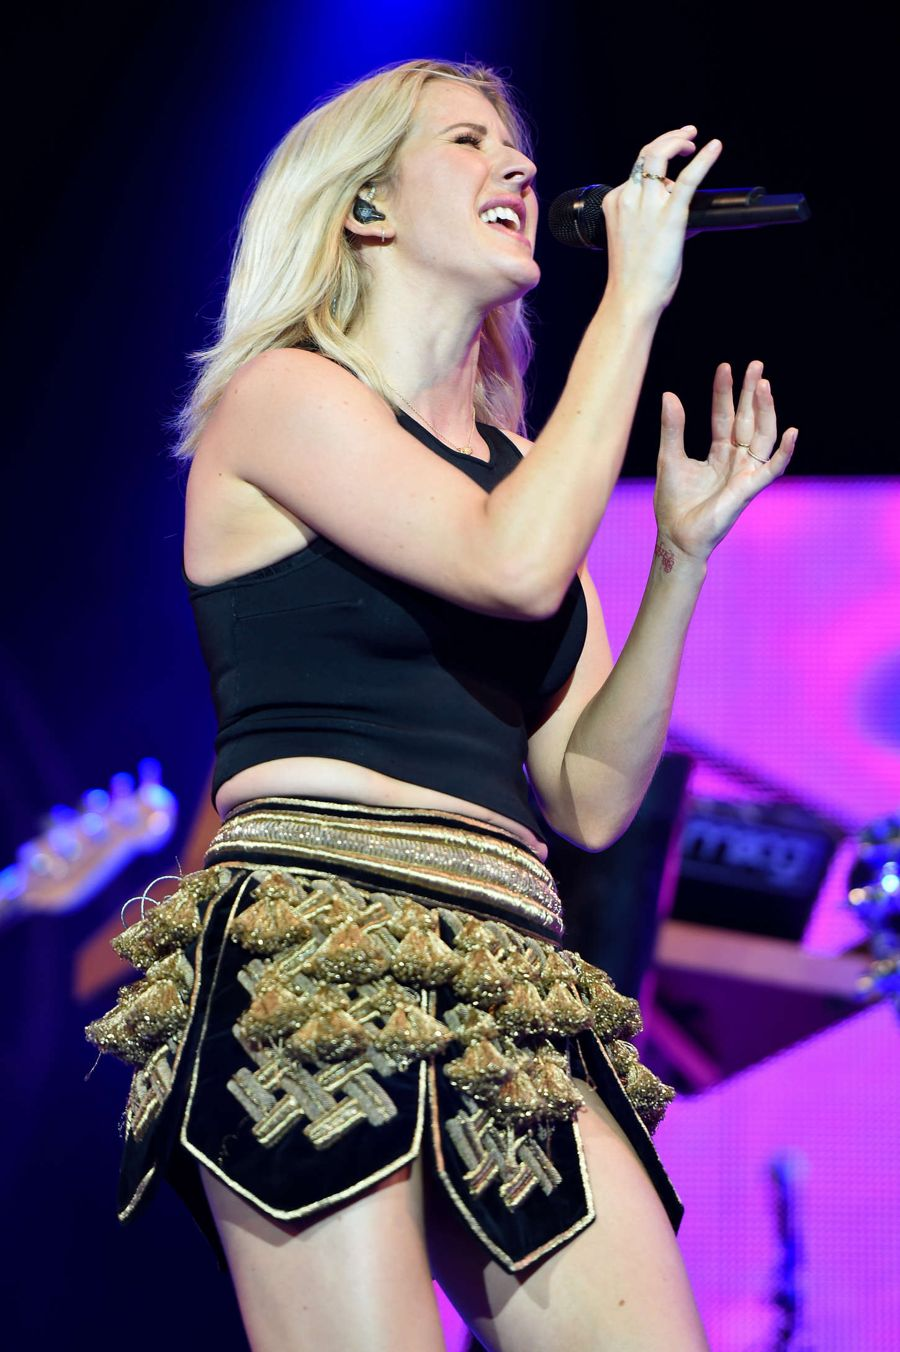 Ellie Goulding - Performs at the Gurten Festival in Bern